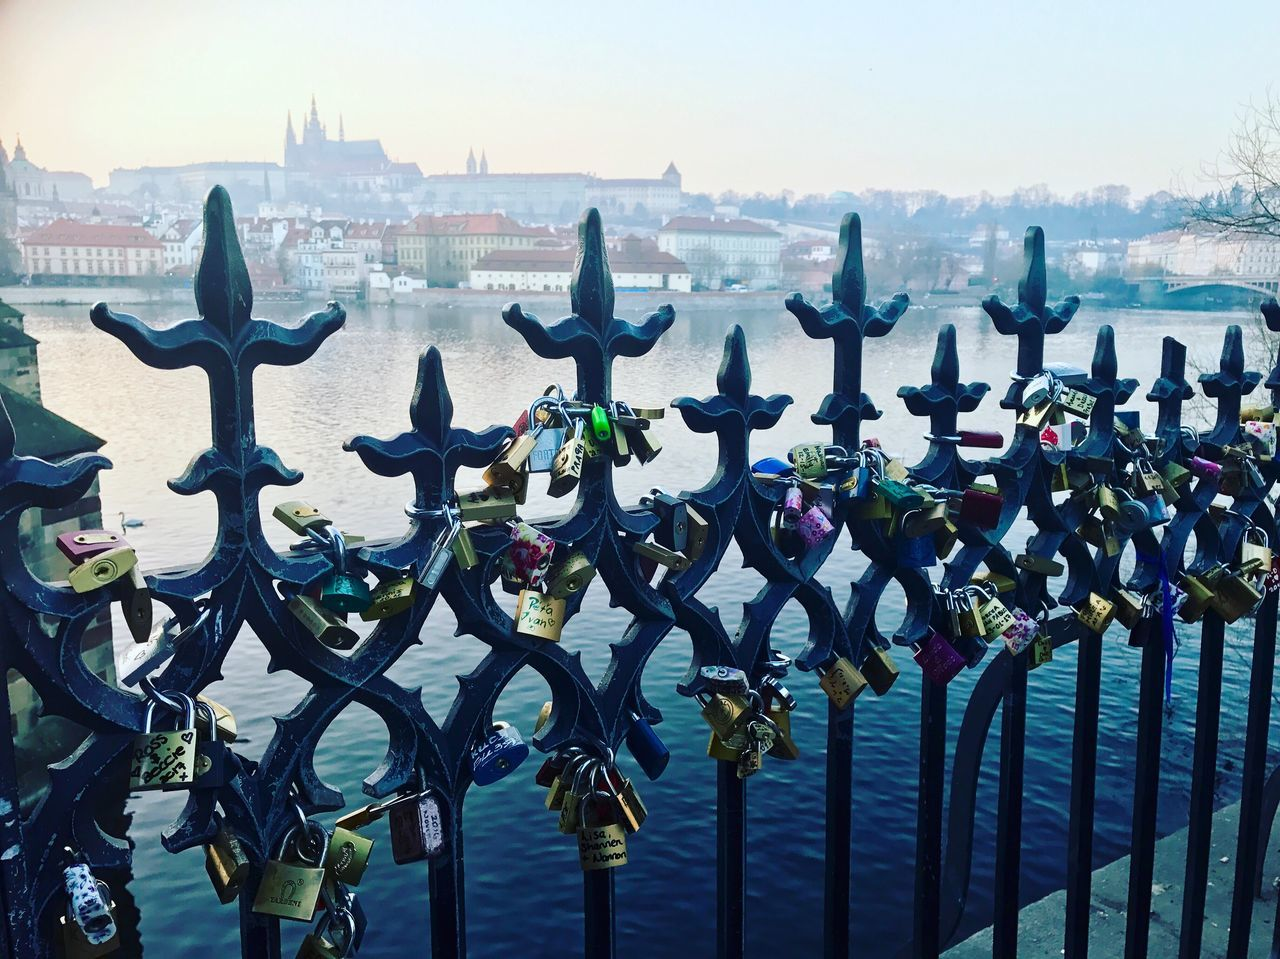 water, metal, railing, outdoors, river, day, padlock, tourism, travel destinations, no people, clear sky, architecture, sky, love lock, city, nature, animal themes, close-up